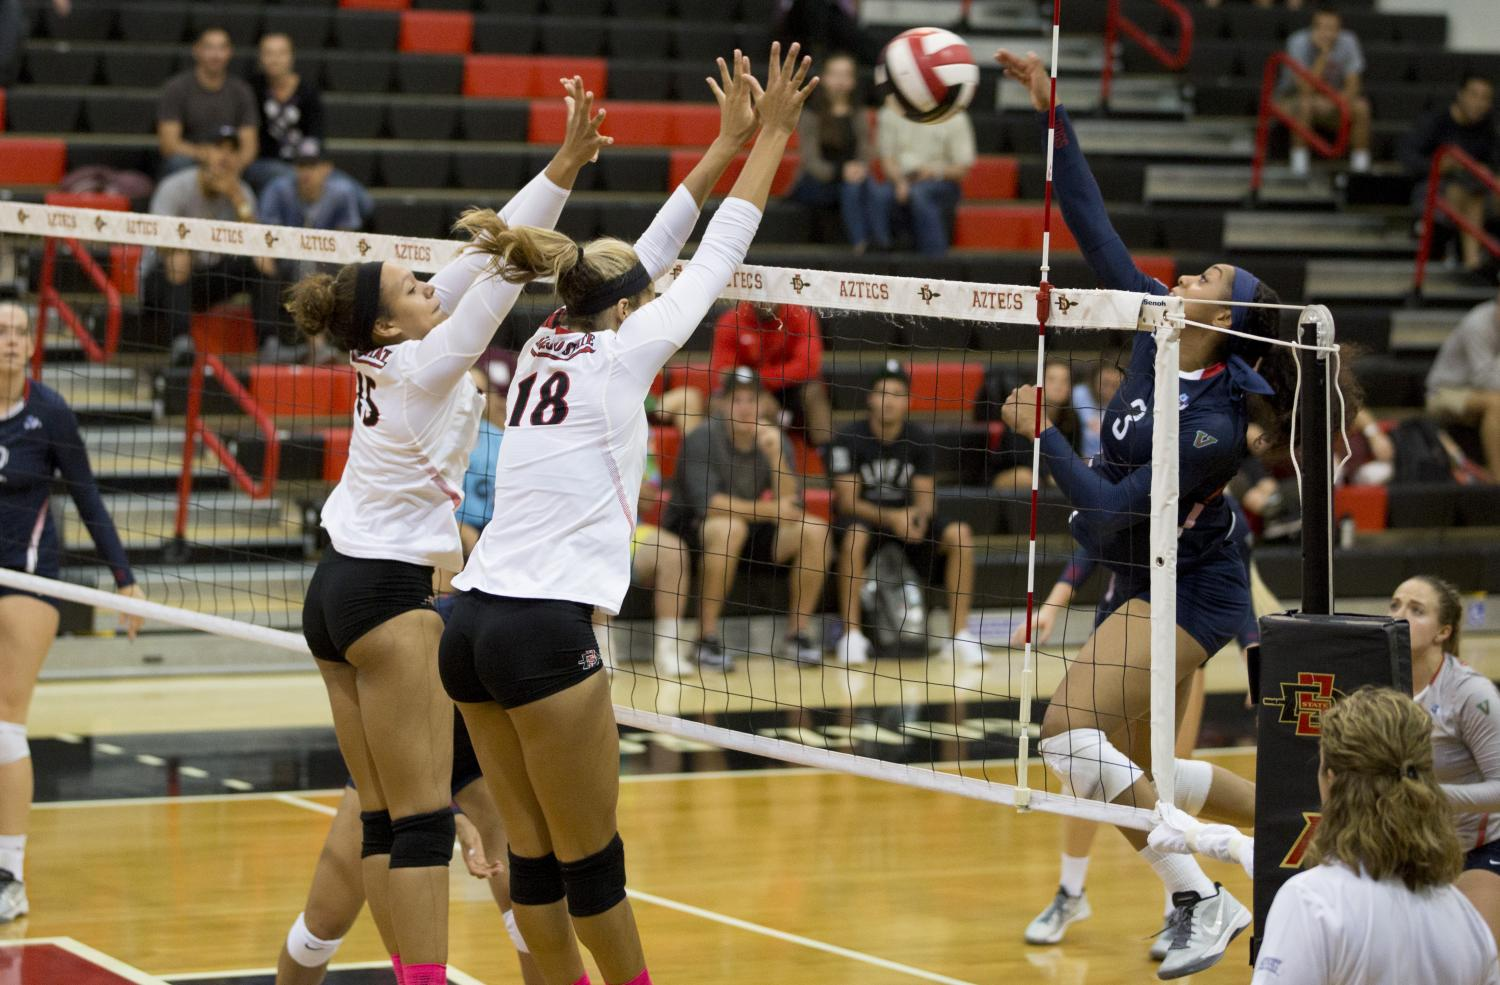 Senior outside hitter Alexis Cage and junior middle blocker Deja Harris go up for a block during SDSU's loss to Loyola Marymount.